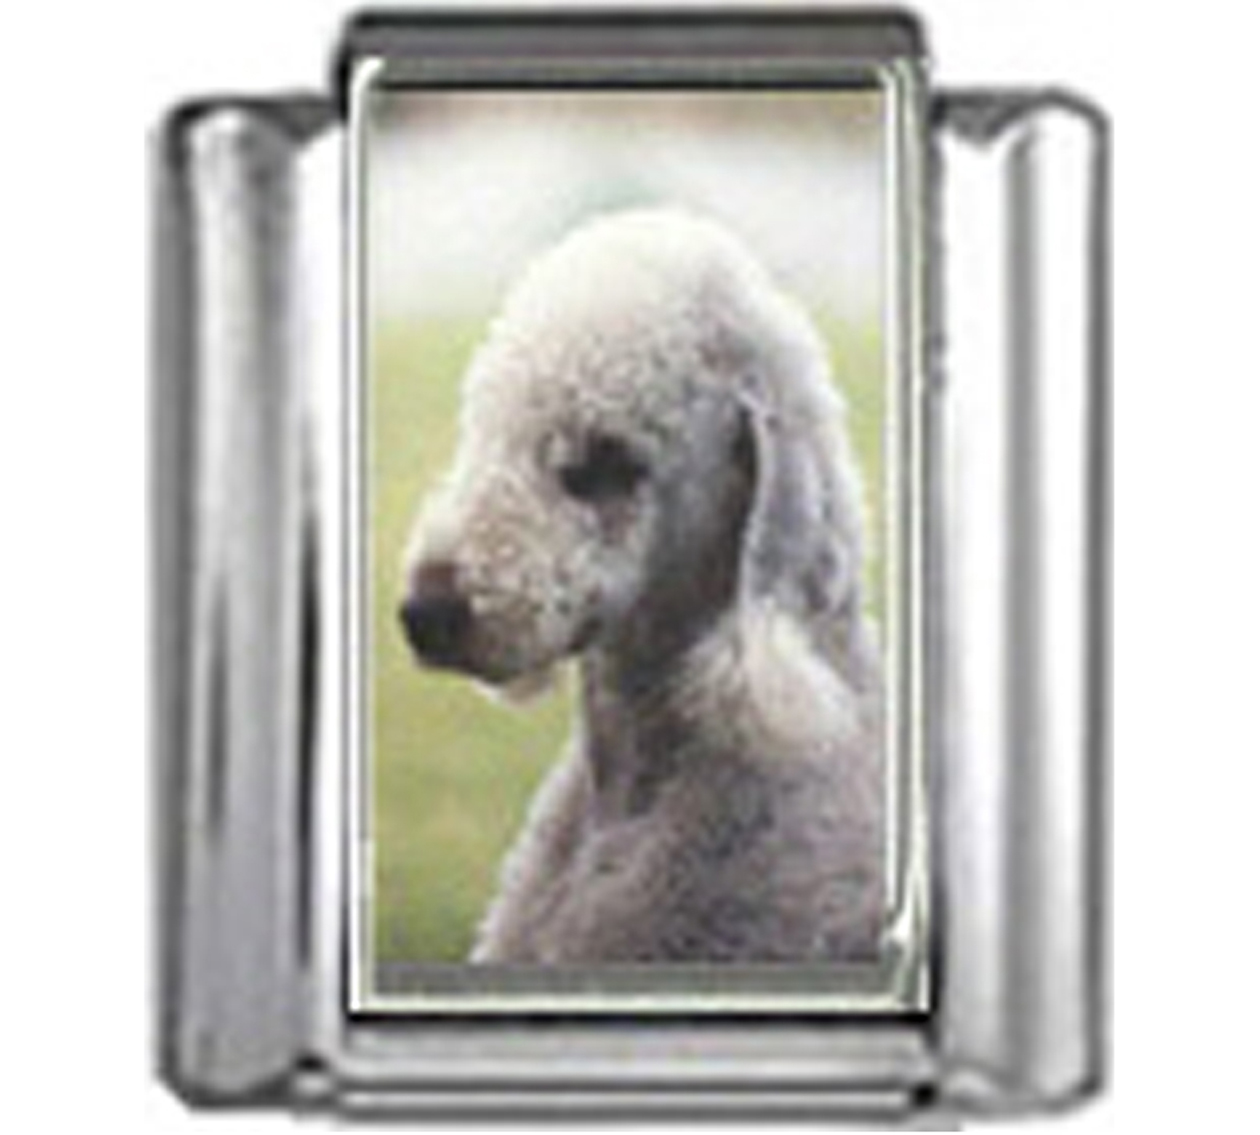 DG066-Bedlington-Terrier-Dog-4